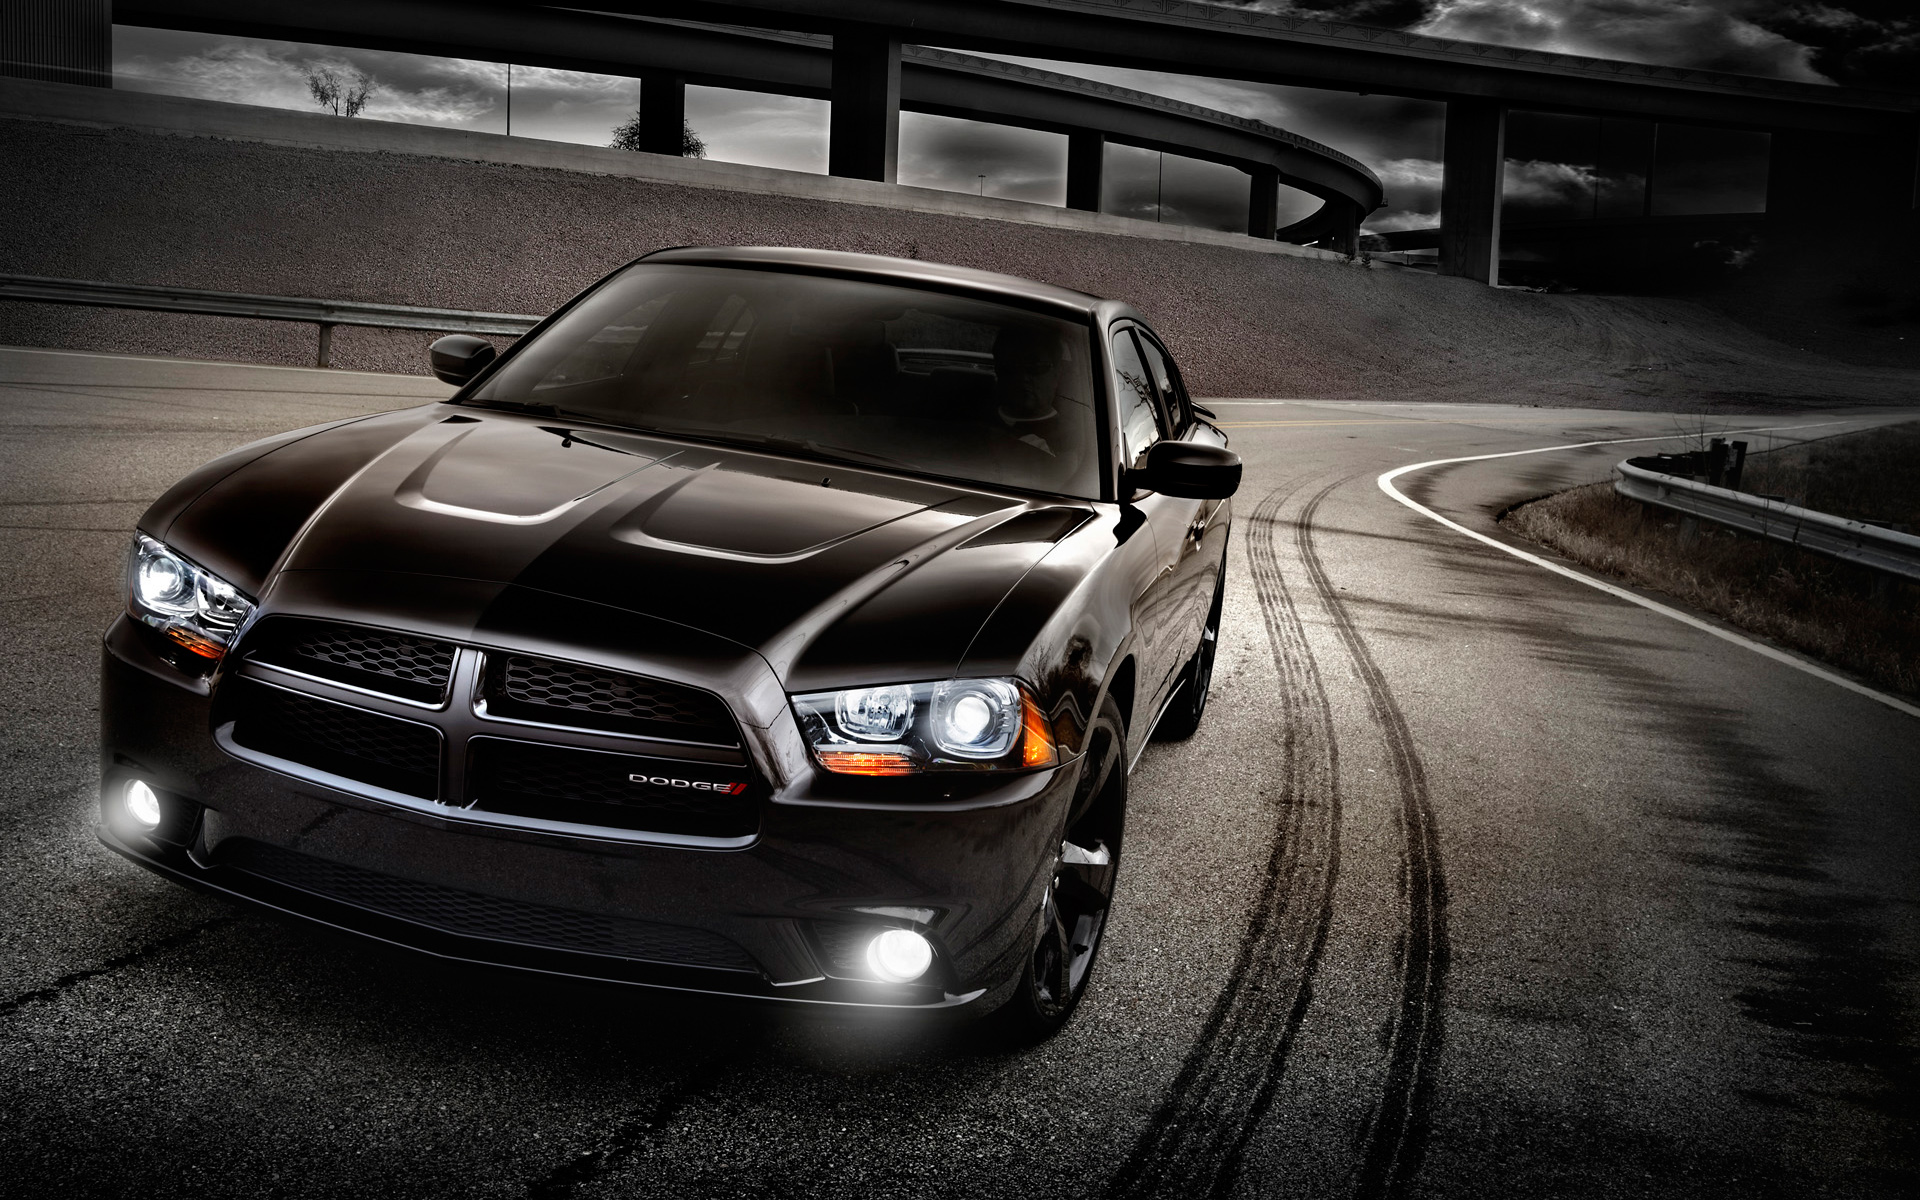 2012 dodge charger 2 3 wallpaper hd car wallpapers id. Black Bedroom Furniture Sets. Home Design Ideas